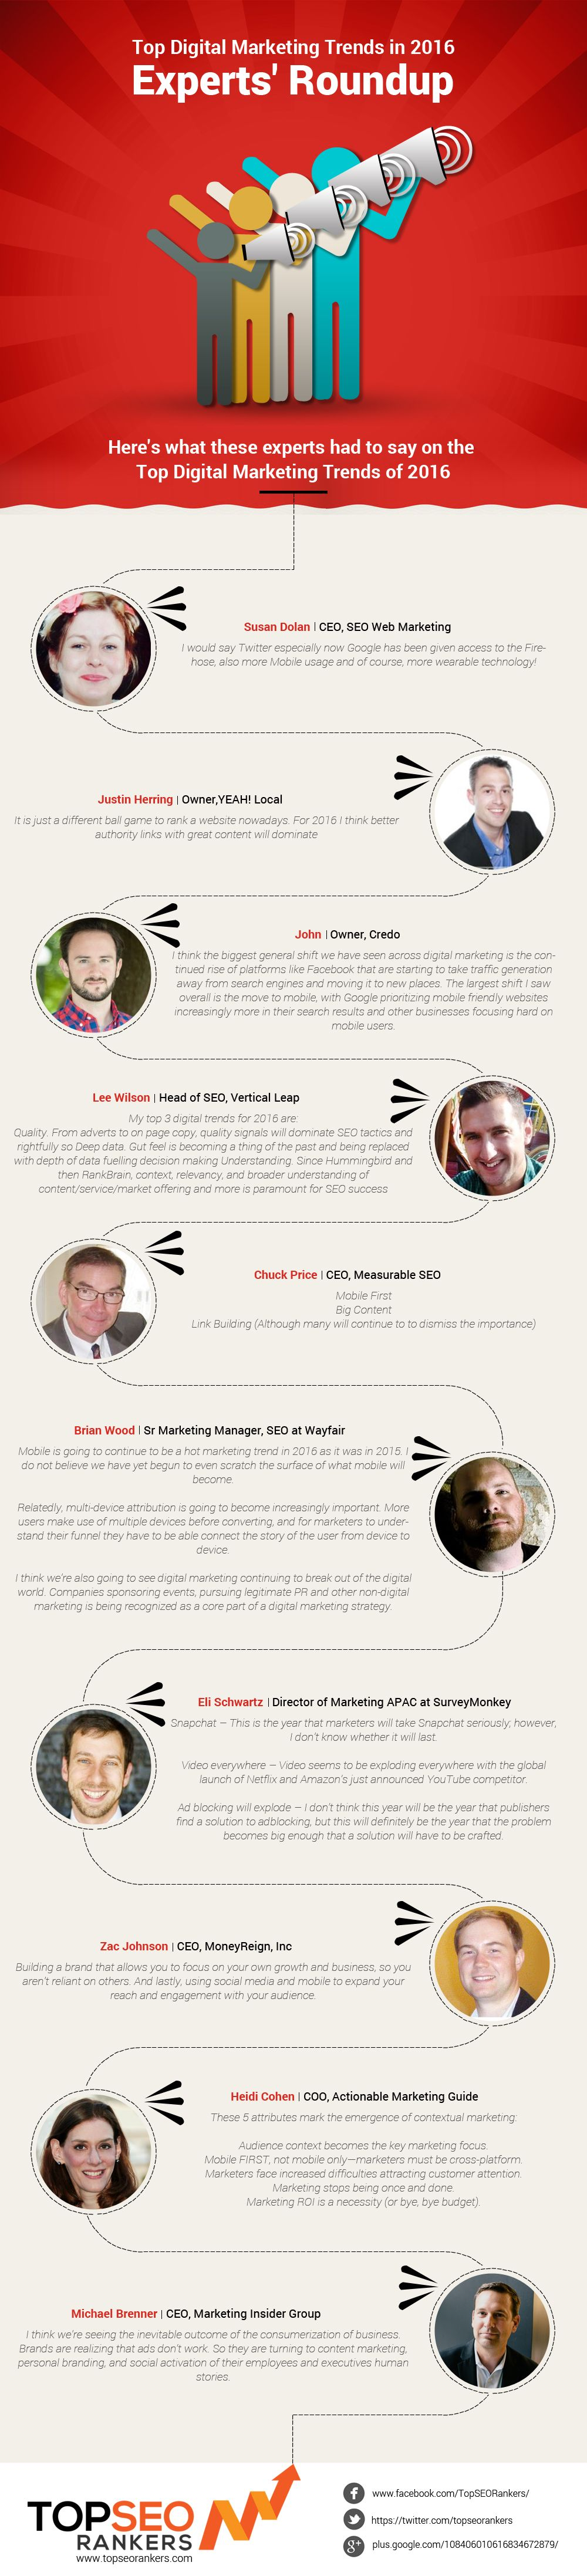 10 Digital Marketing Experts Shed Light on the Top Industry Trends for 2016 #Infographic